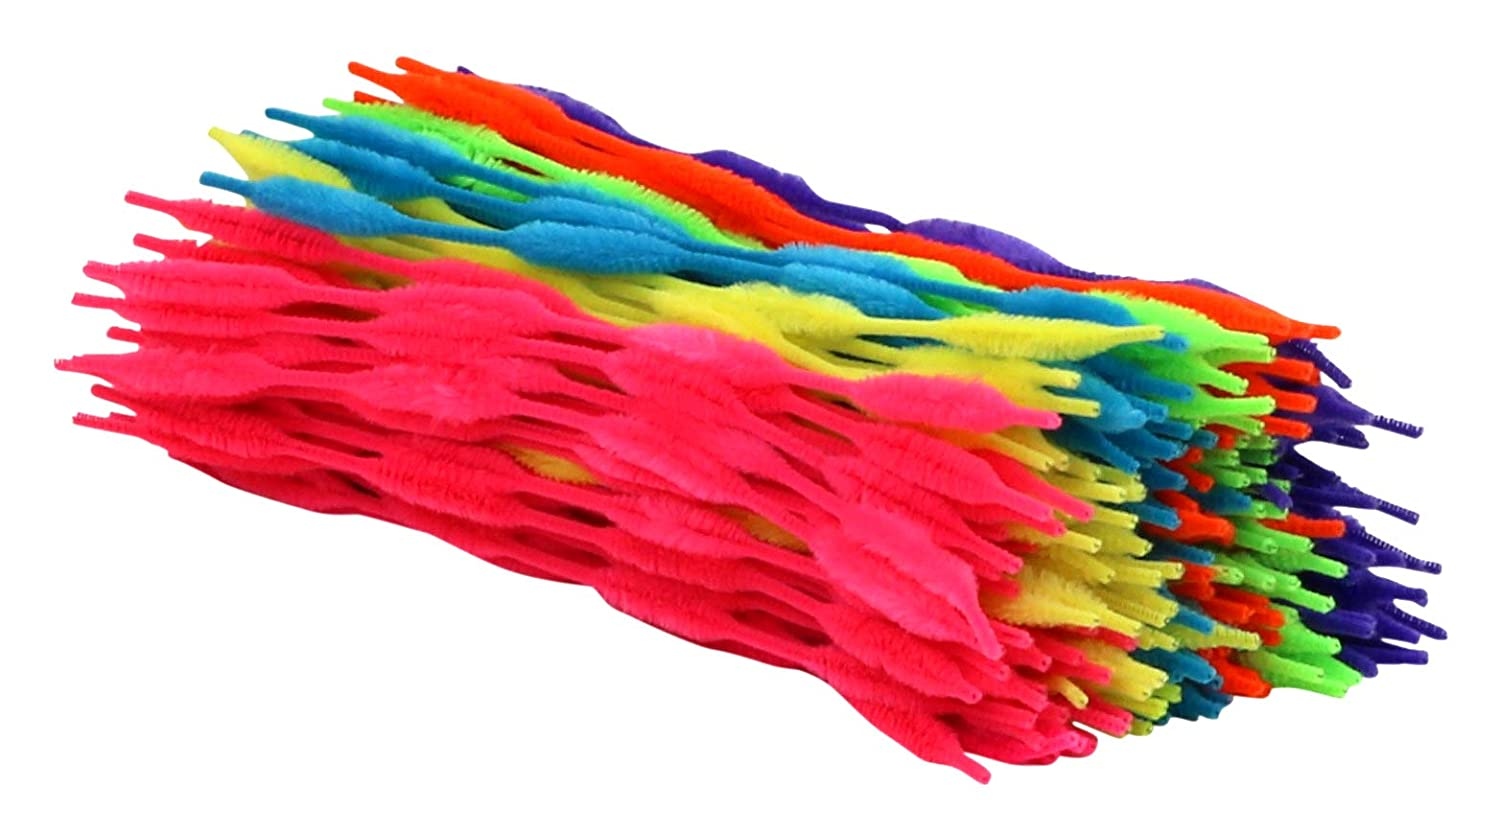 200-Count Bright Colors Assortment Iconikal Pipe Cleaners Craft Chenille Stems with Bumps